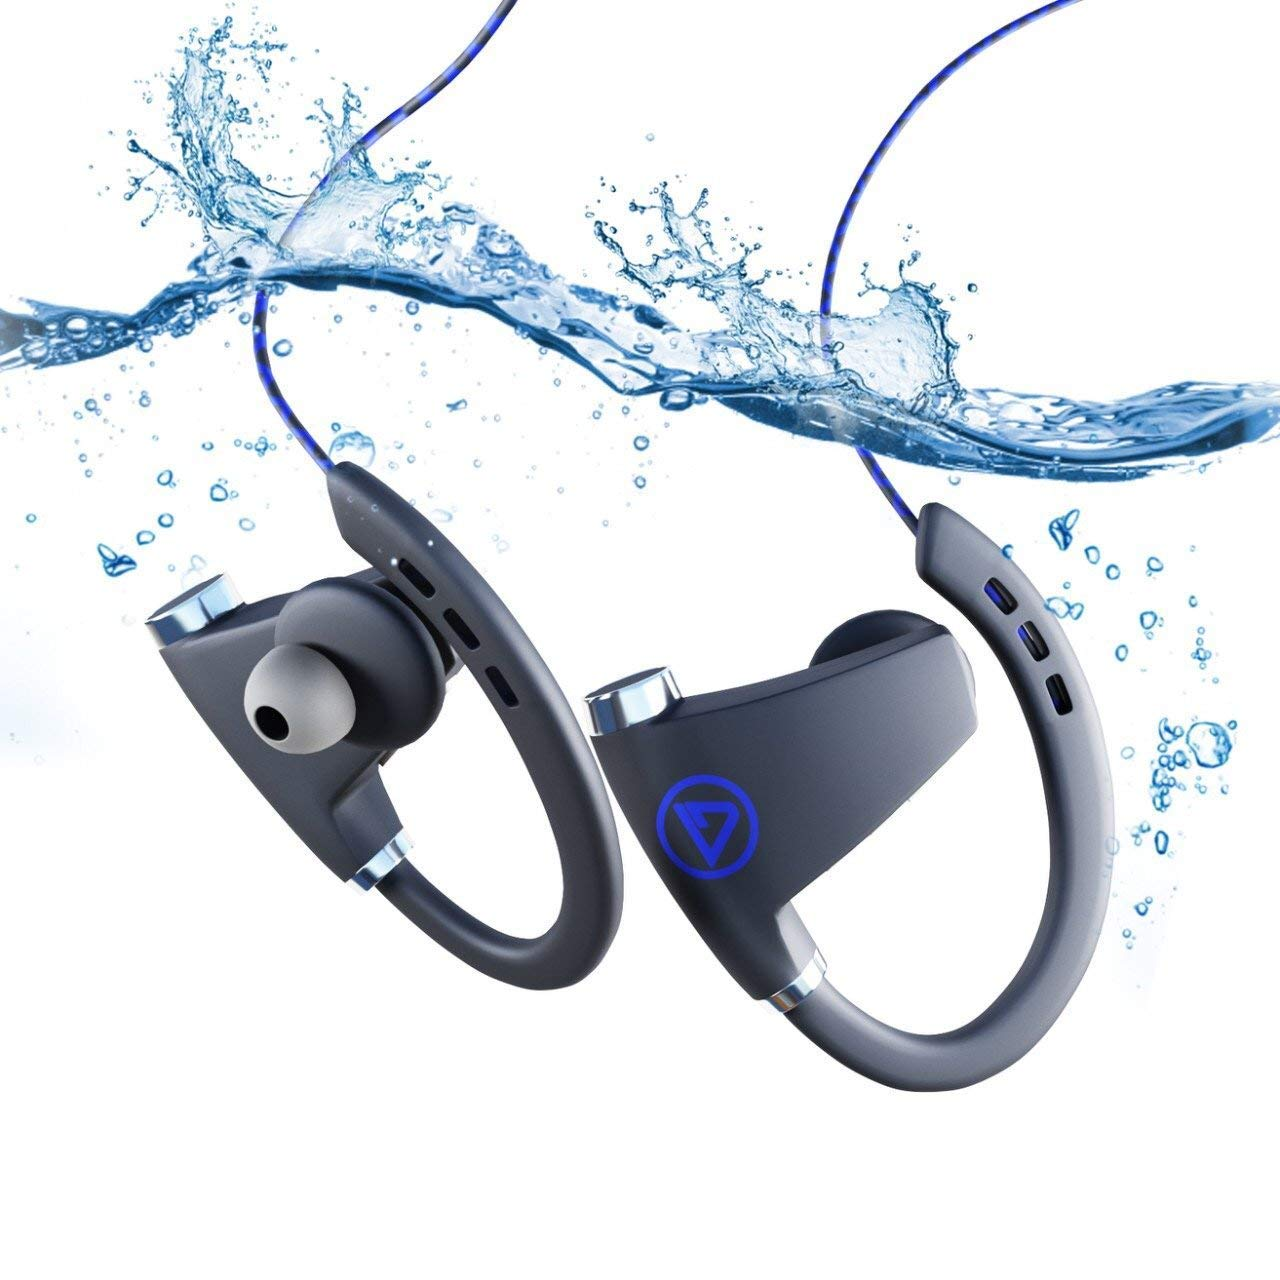 Bluetooth Headphones, Best Wireless Sports Earphones w/Mic IPX7 Waterproof HD Stereo Sweatproof Earbuds for Gym Running Workout 12 Hour Battery Noise Cancelling Headsets (Blue)